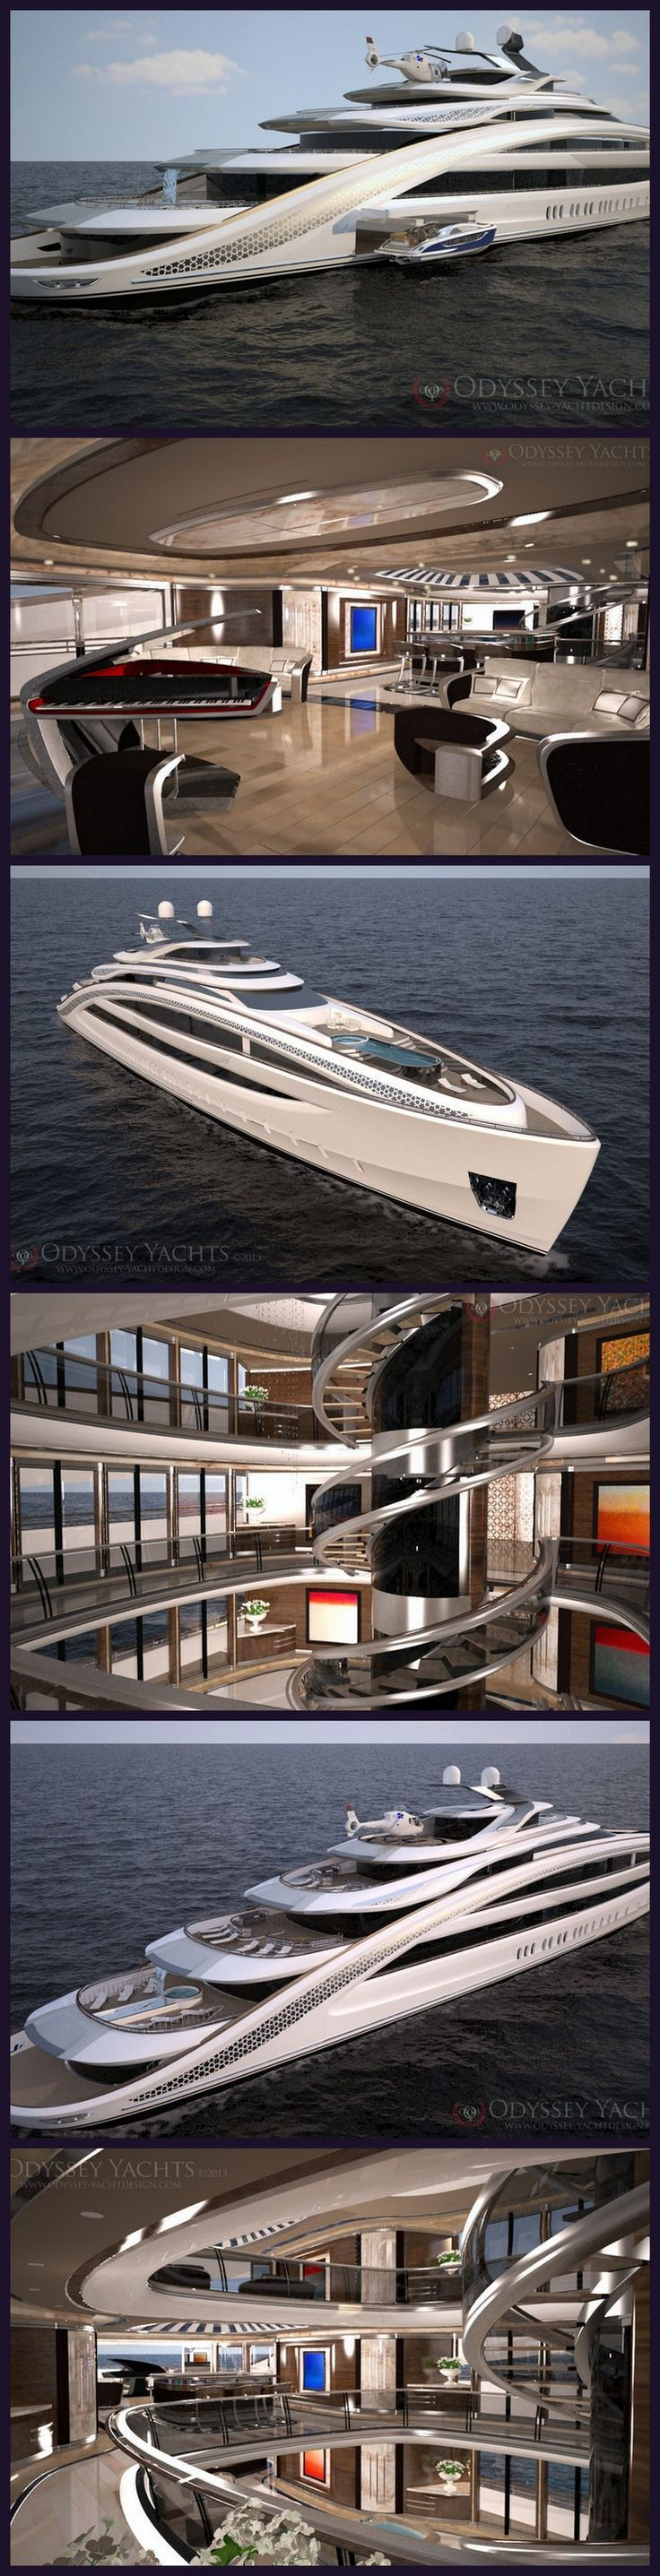 Odyssey Yachts announce release of 95m Motor Yacht 'Nautilus' project: